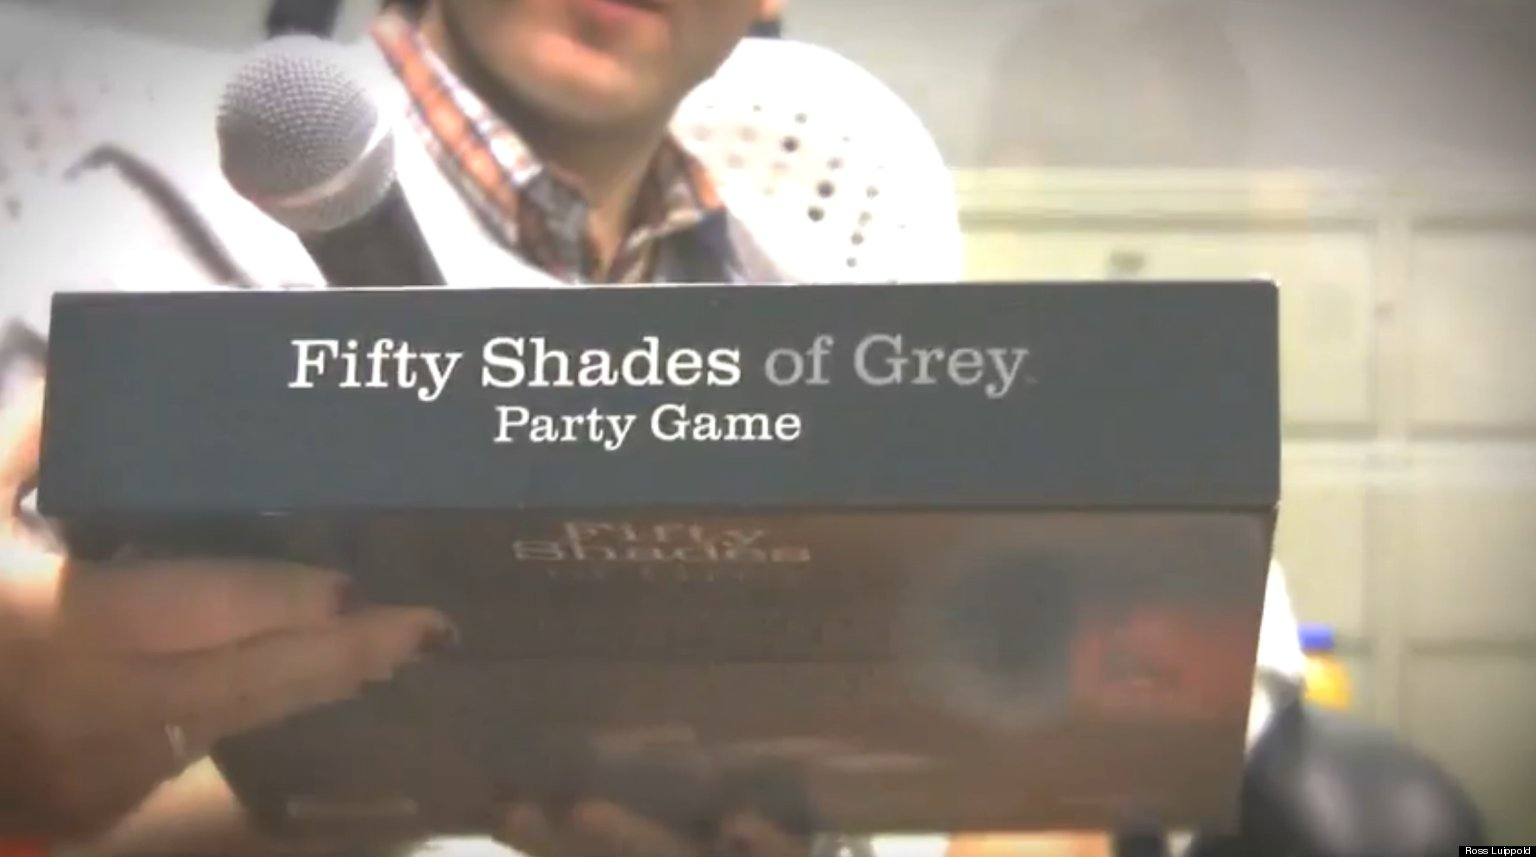 50 shades of grey party board game is more fun sarah heyward 50 shades of grey party board game is more fun sarah heyward video the huffington post